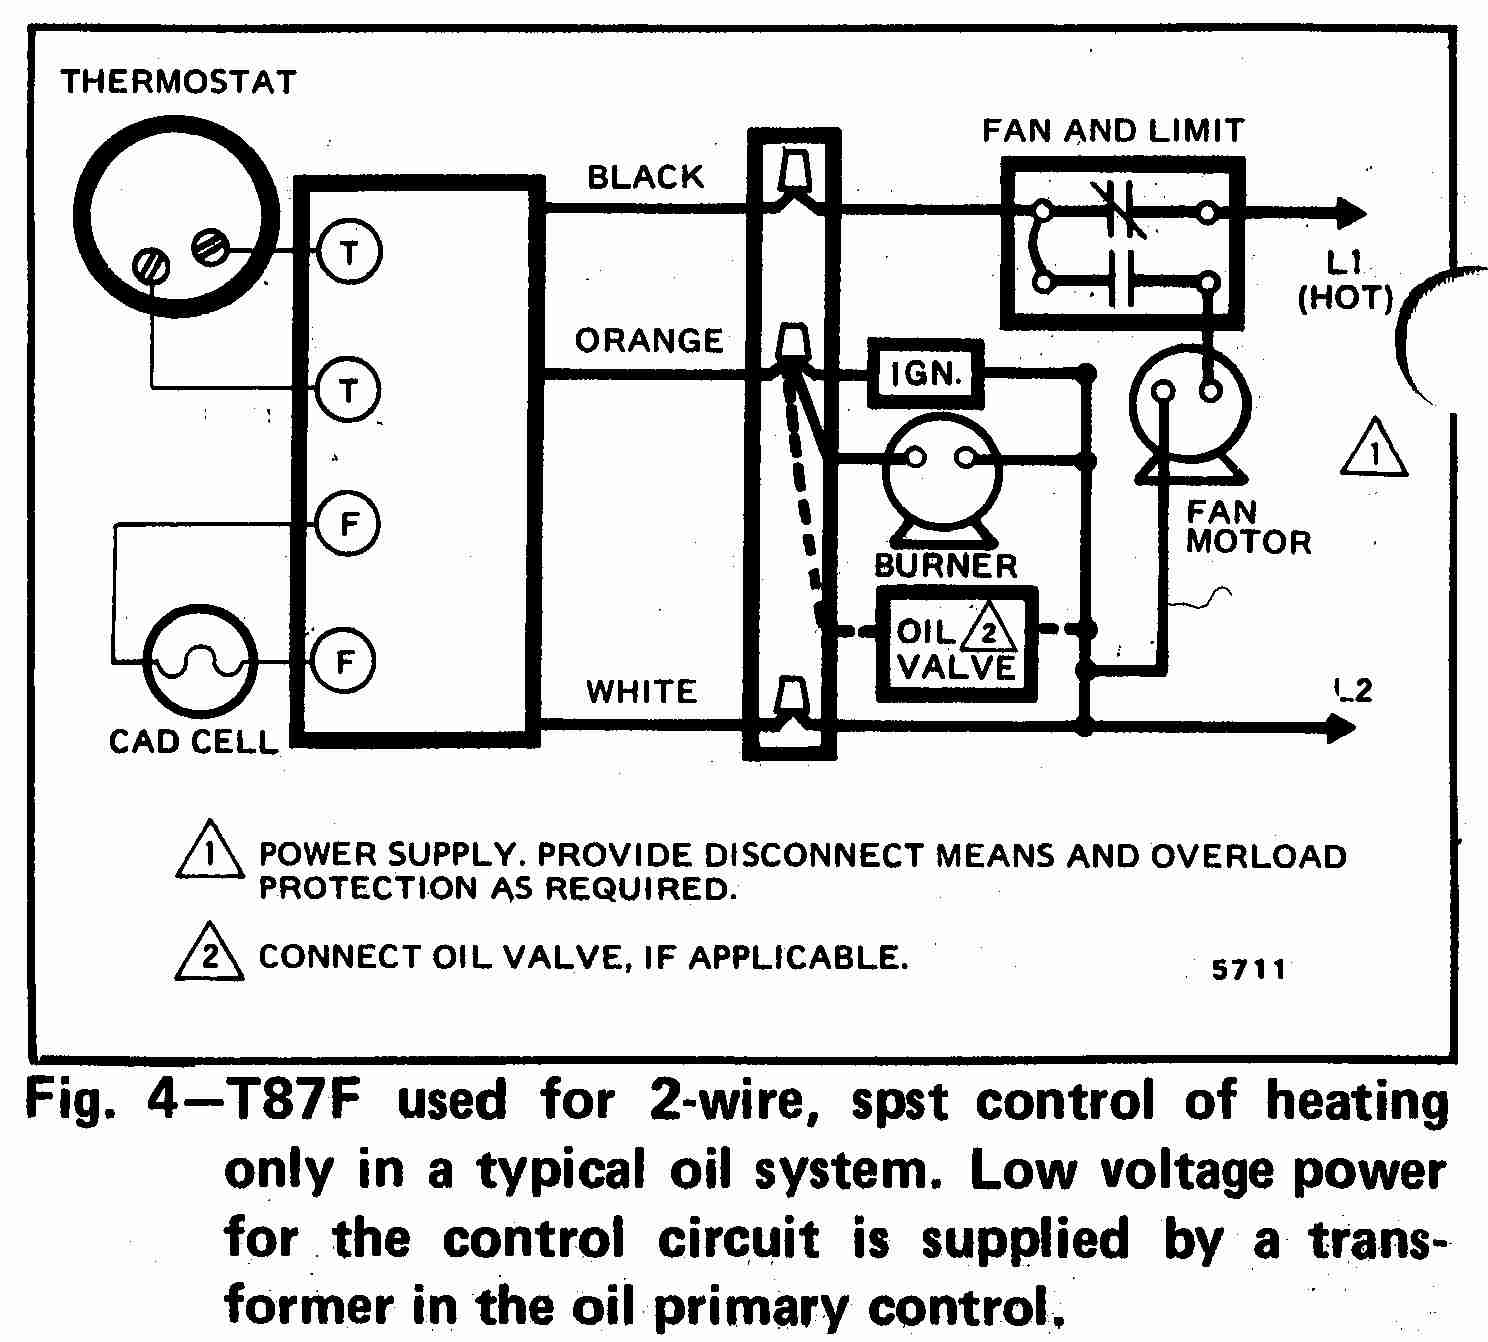 TT_T87F_0002_2W_DJF room thermostat wiring diagrams for hvac systems field controls power venter wiring diagram at edmiracle.co